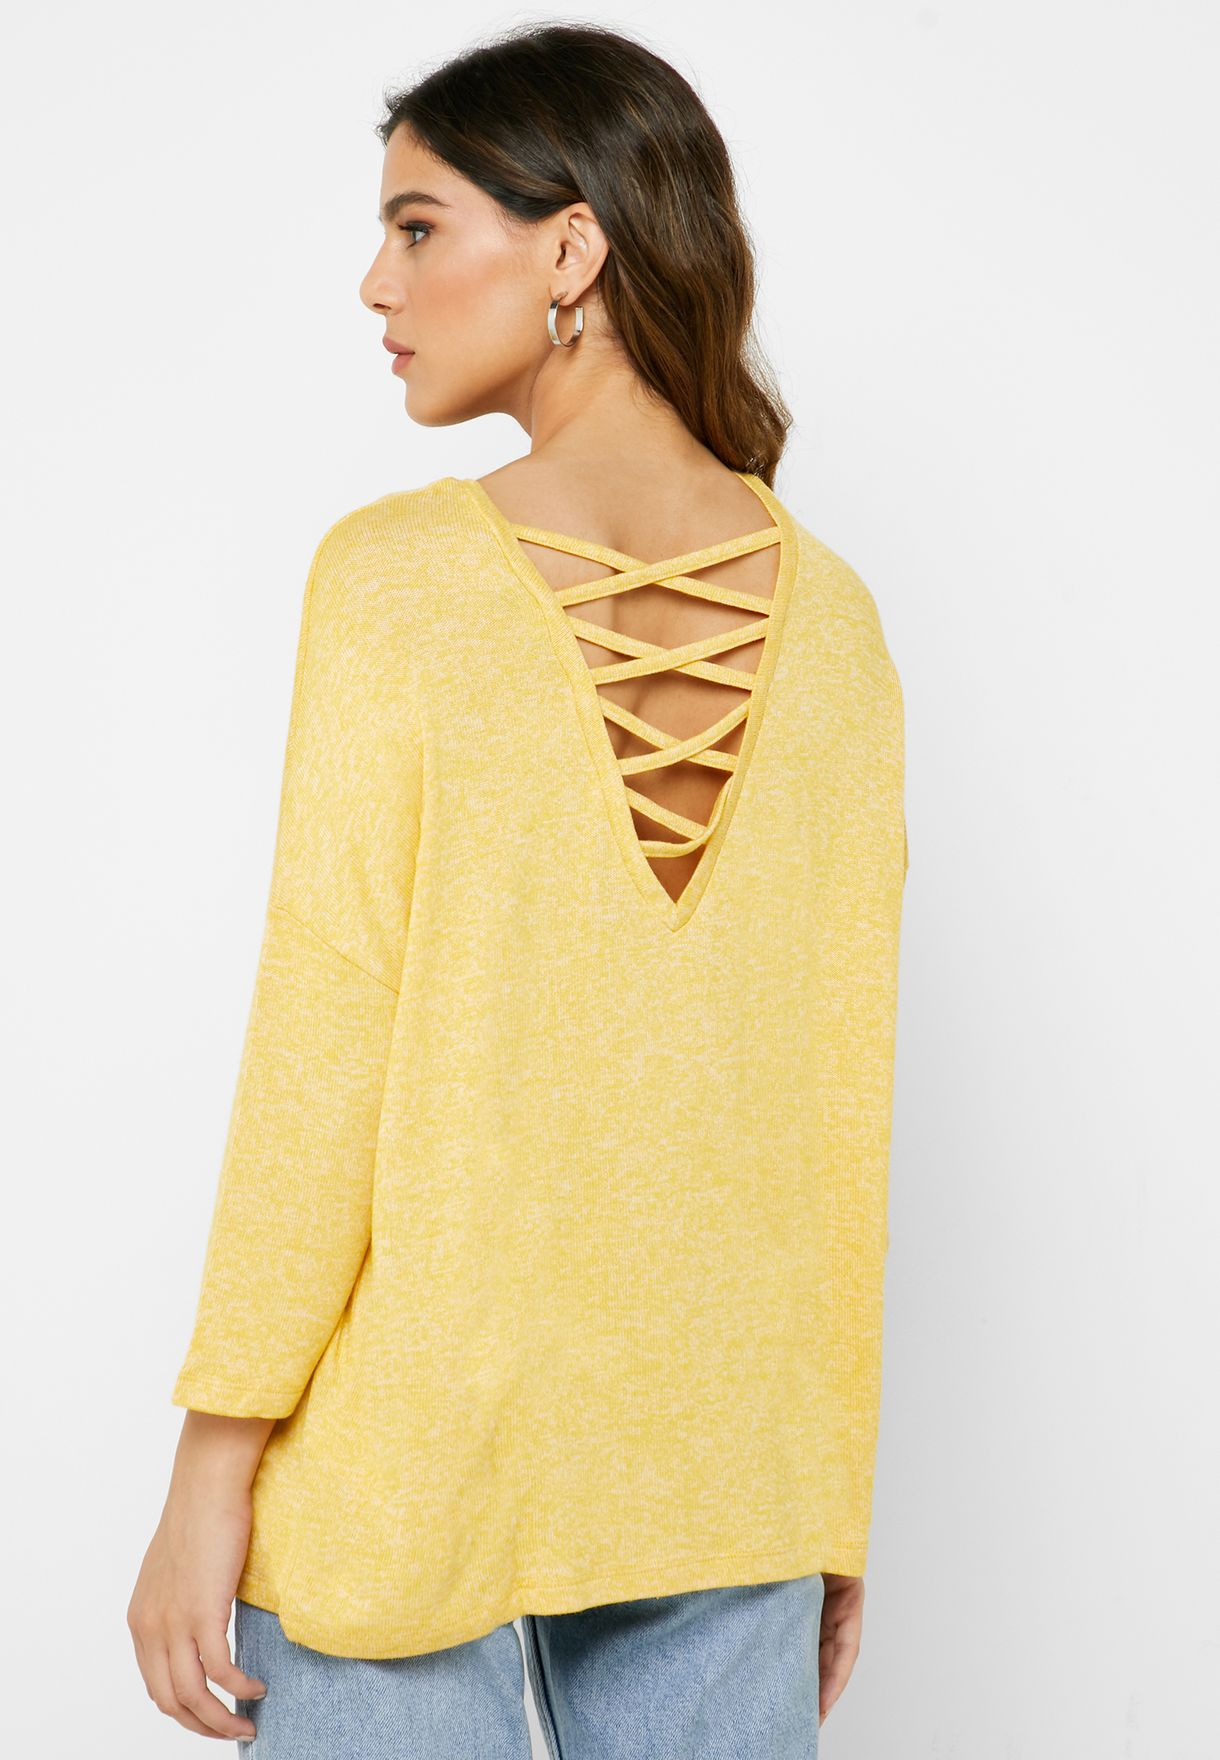 Oversized String Top